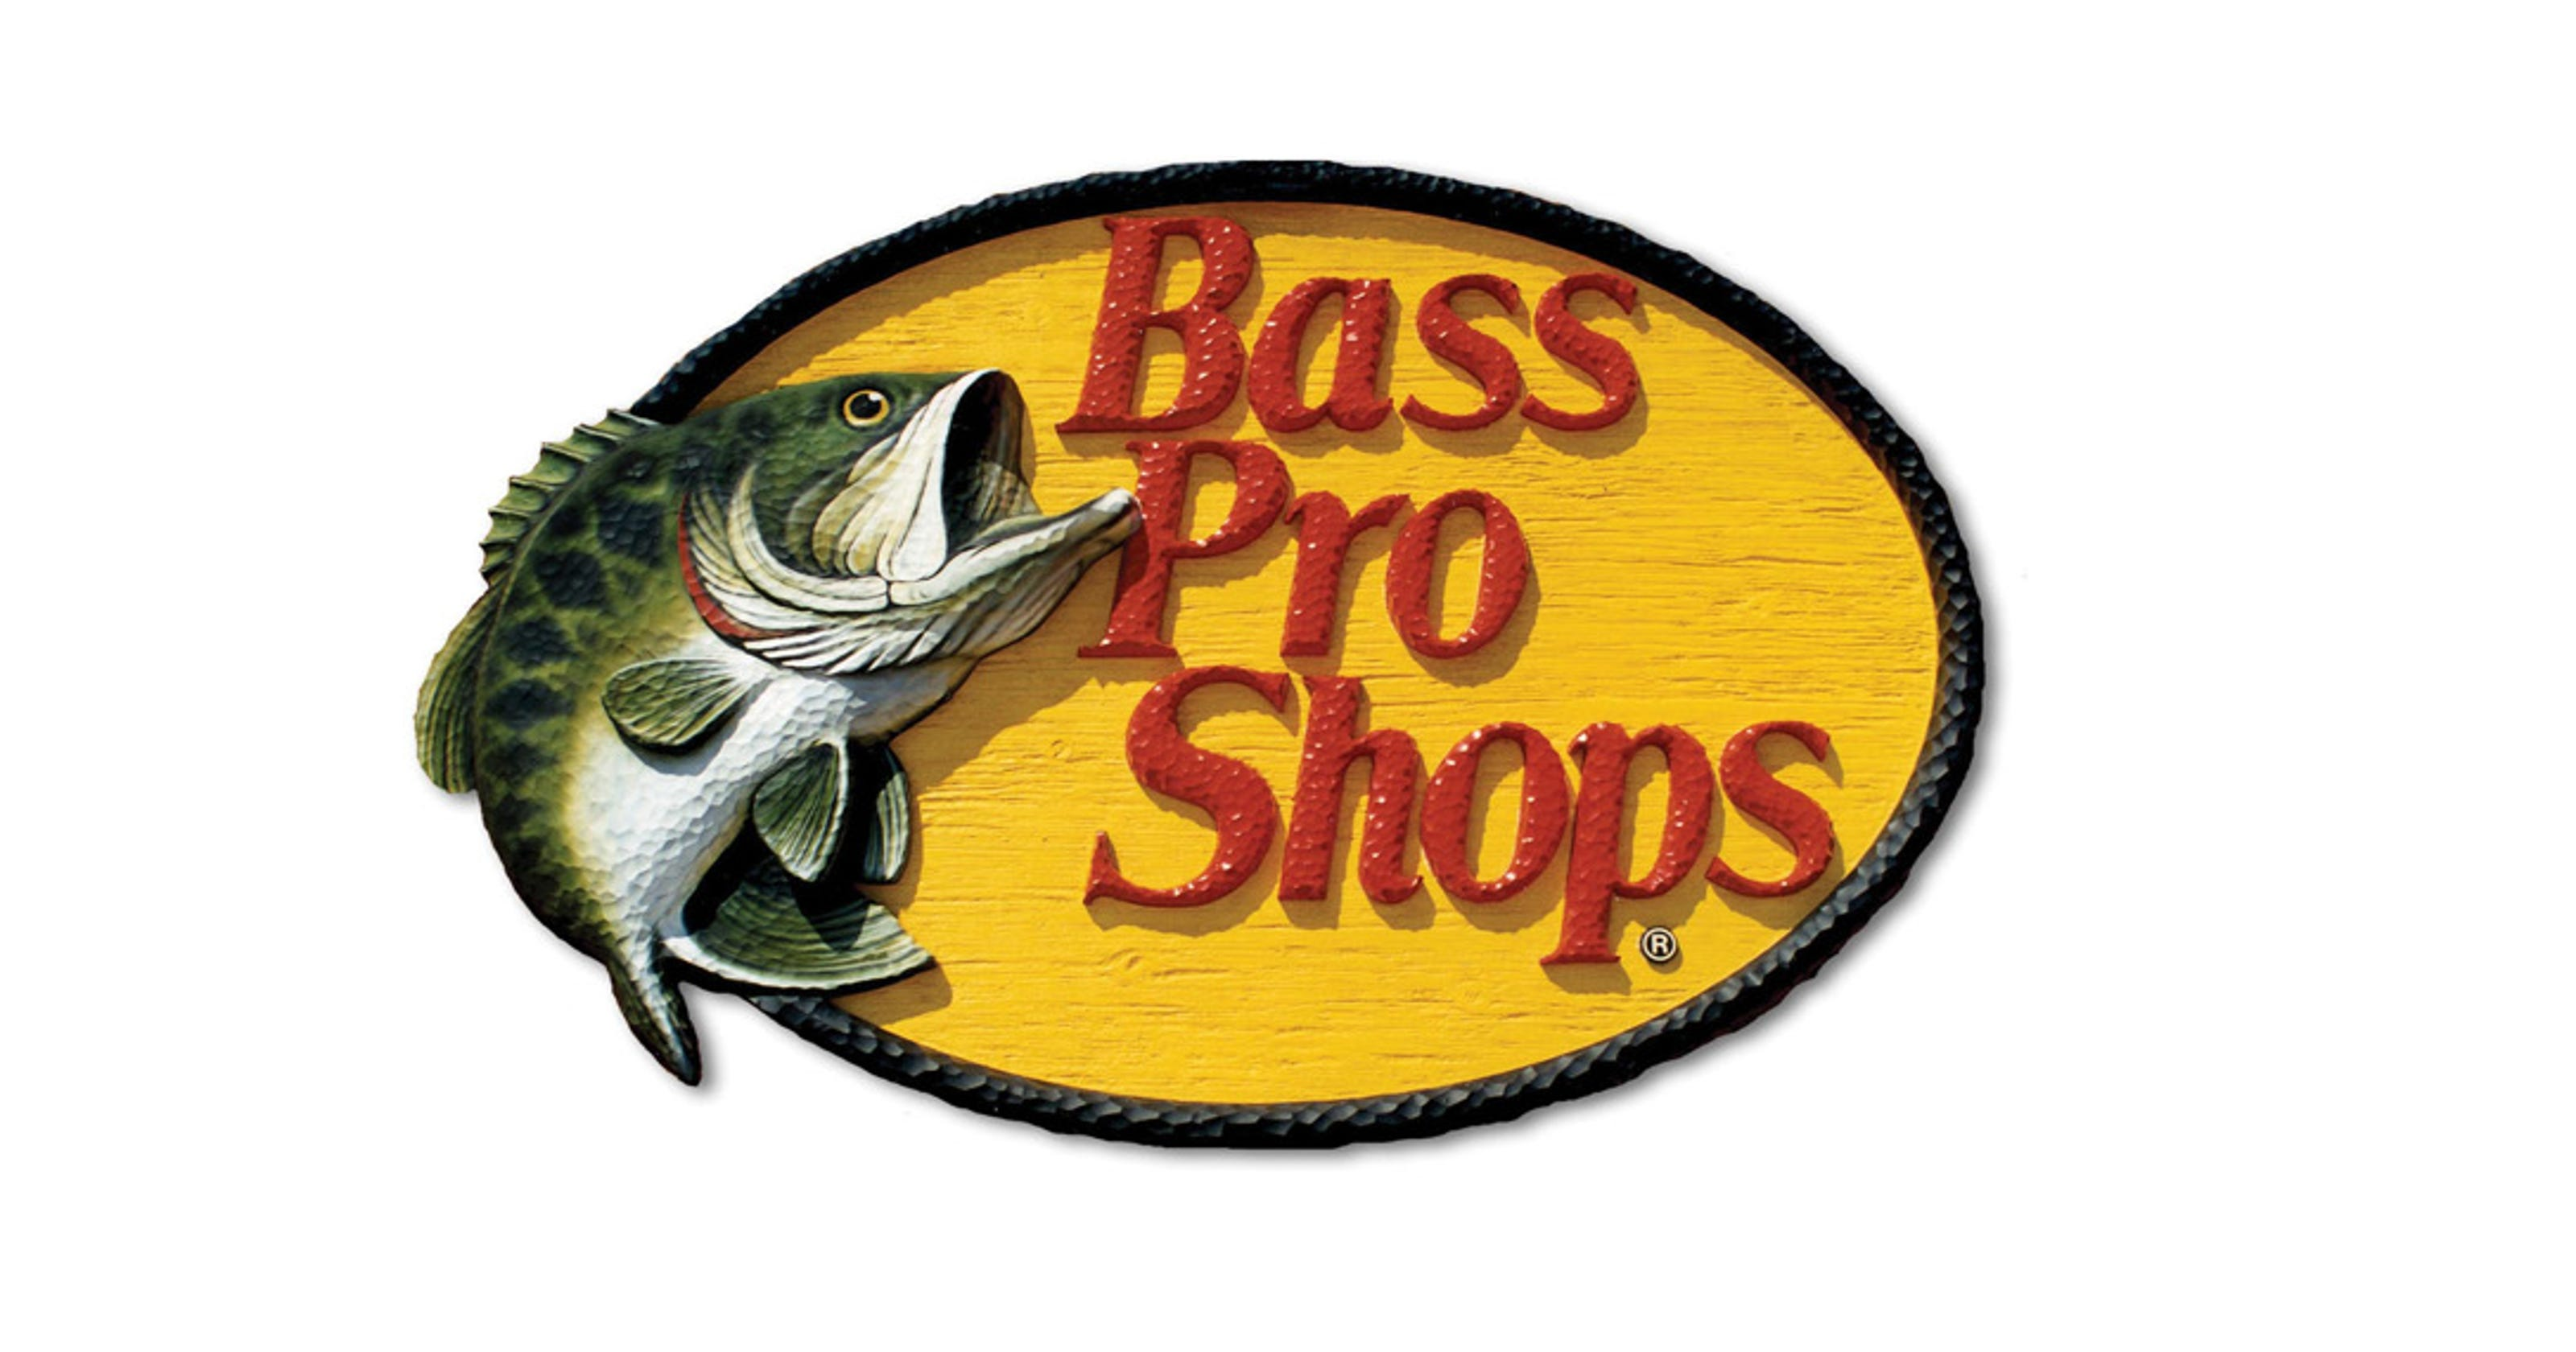 Bass Pro Shops Named To List Of Americas Most Reputable Companies